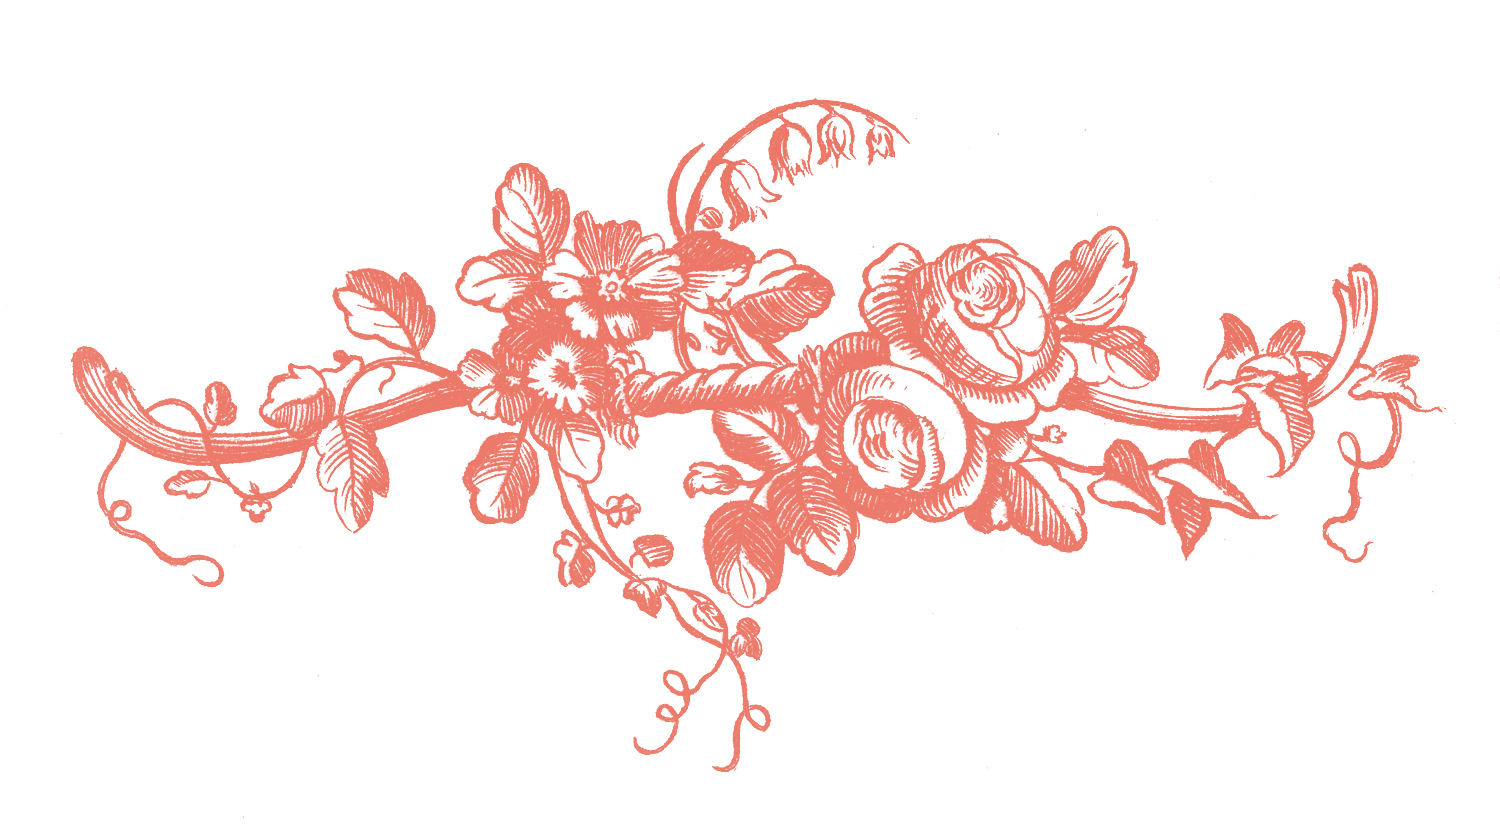 kwiaty kolorowanki do druku dla dzieci 3 additionally mister lincoln hybrid tea bush rose coloring page as well  in addition  also  together with  also jbh091230164199984d29e9c1a6c3 in addition floral70 furthermore French Roses GraphicsFairy2pk likewise rosa eglanteria or sweet briar rose coloring page besides 009 free valentine day coloring. on dozen roses flowers coloring pages